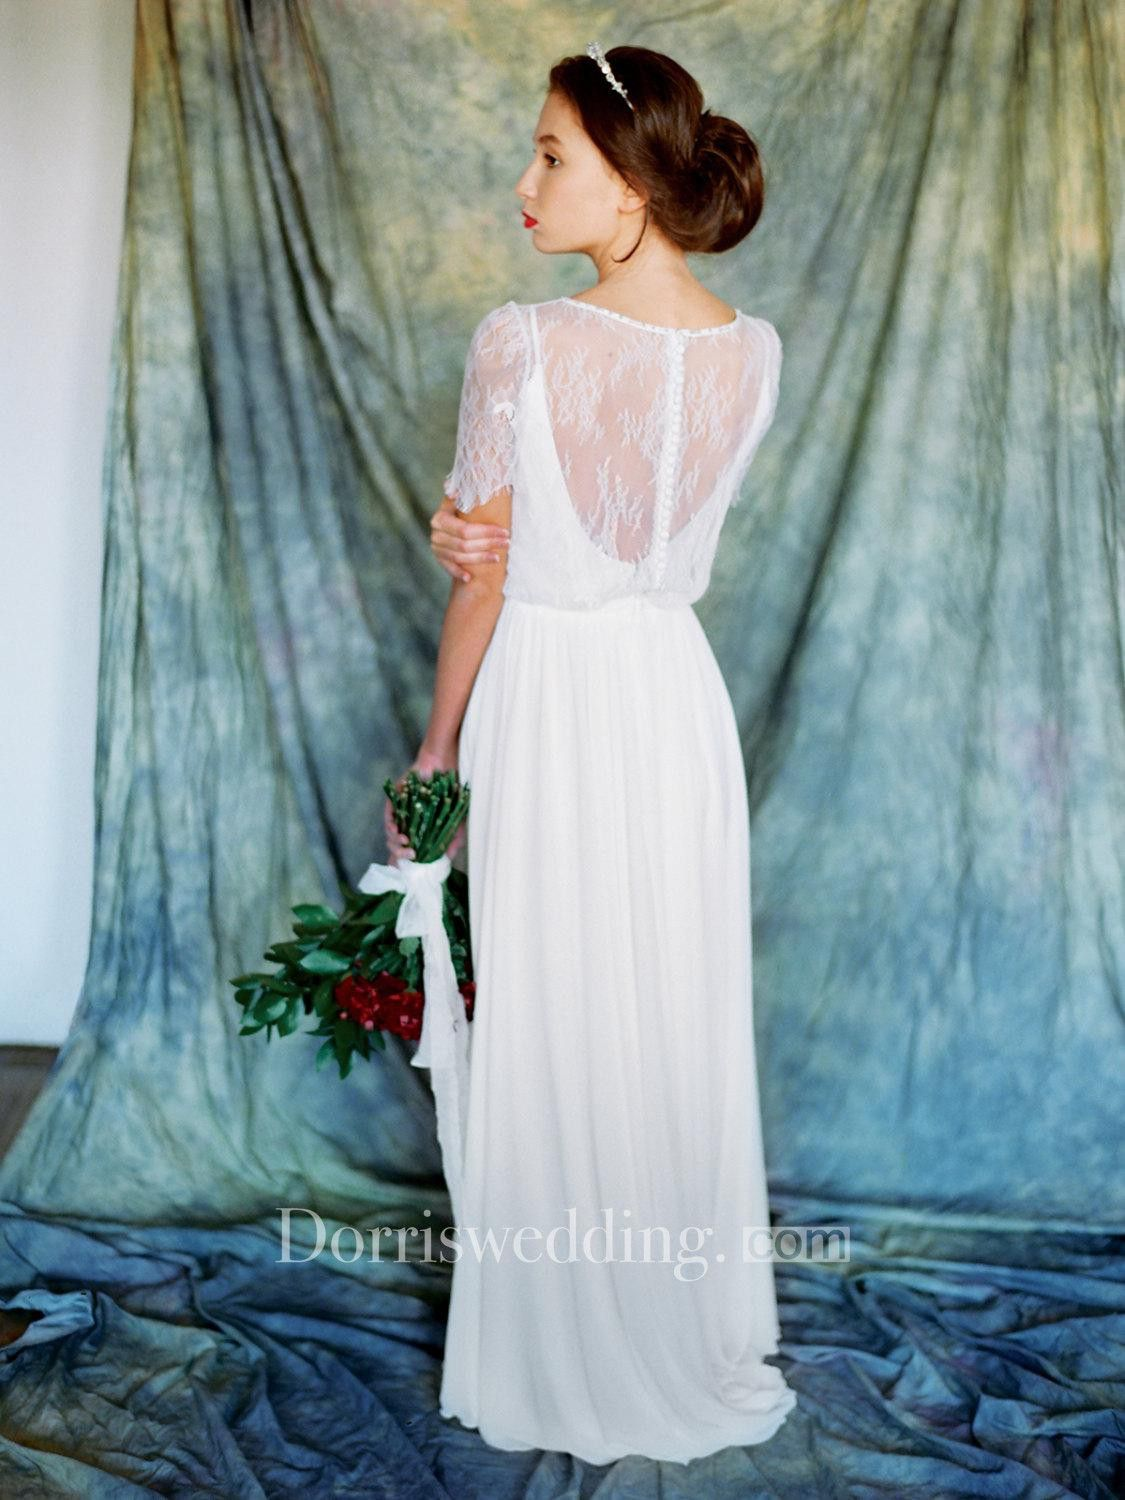 Chiffon A-Line Vintage-Inspired Dress With Lace Overlay Top | Lace ...